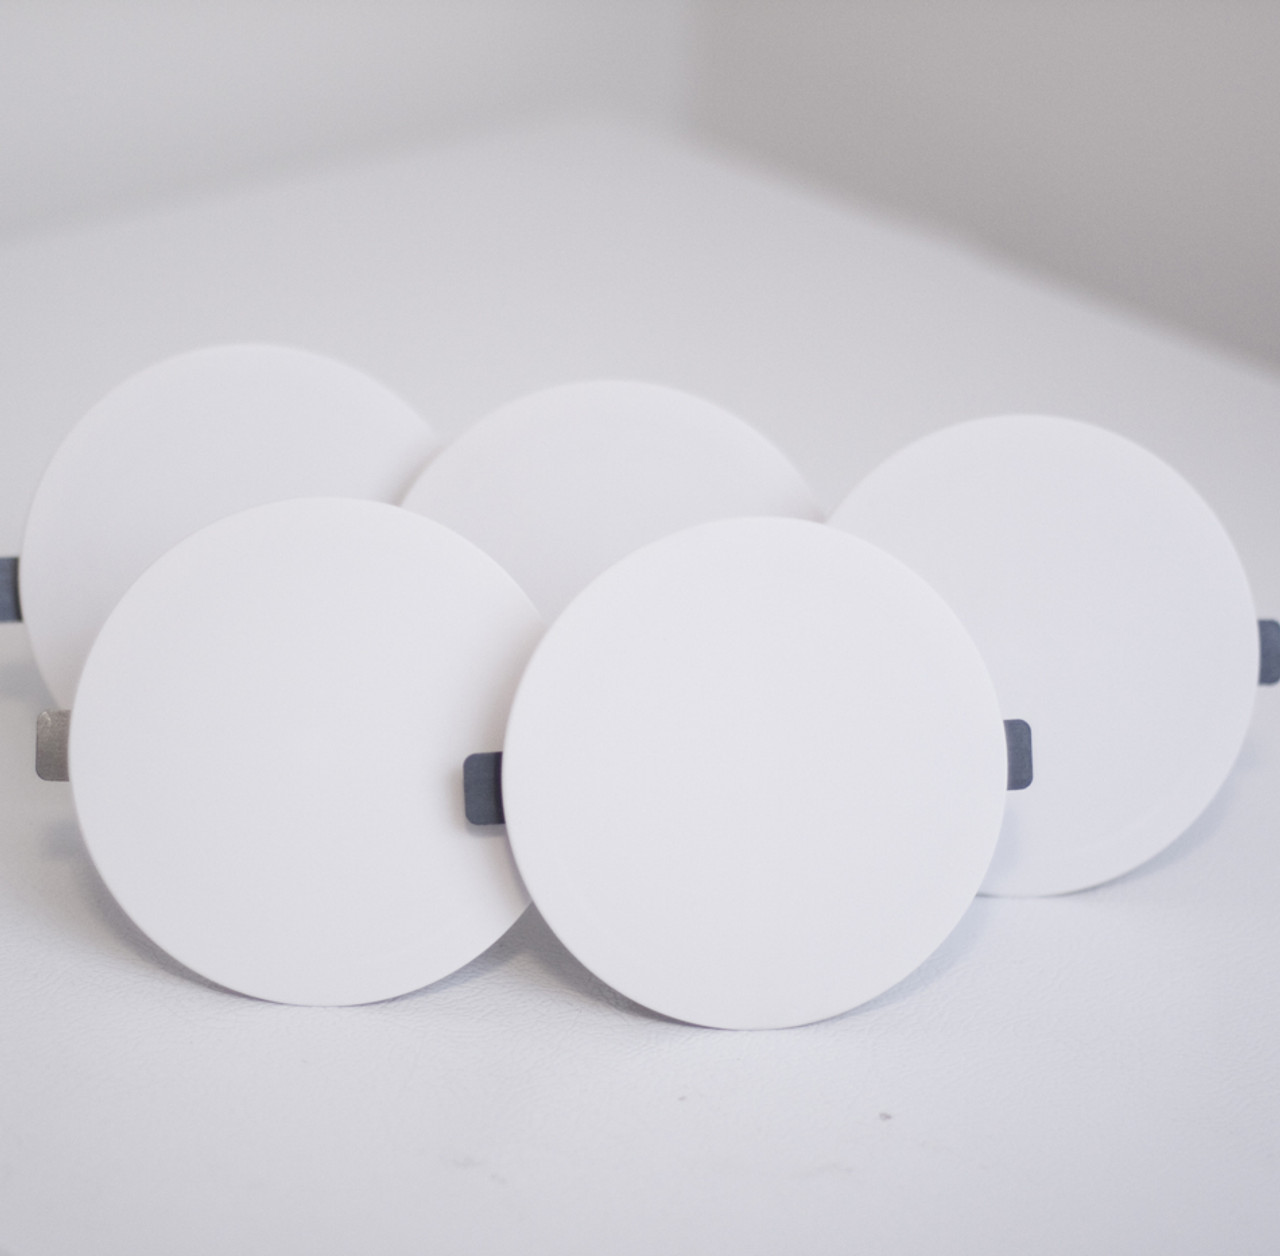 Round In Ceiling Speaker Hole Cover Plate Best Ceiling 2018